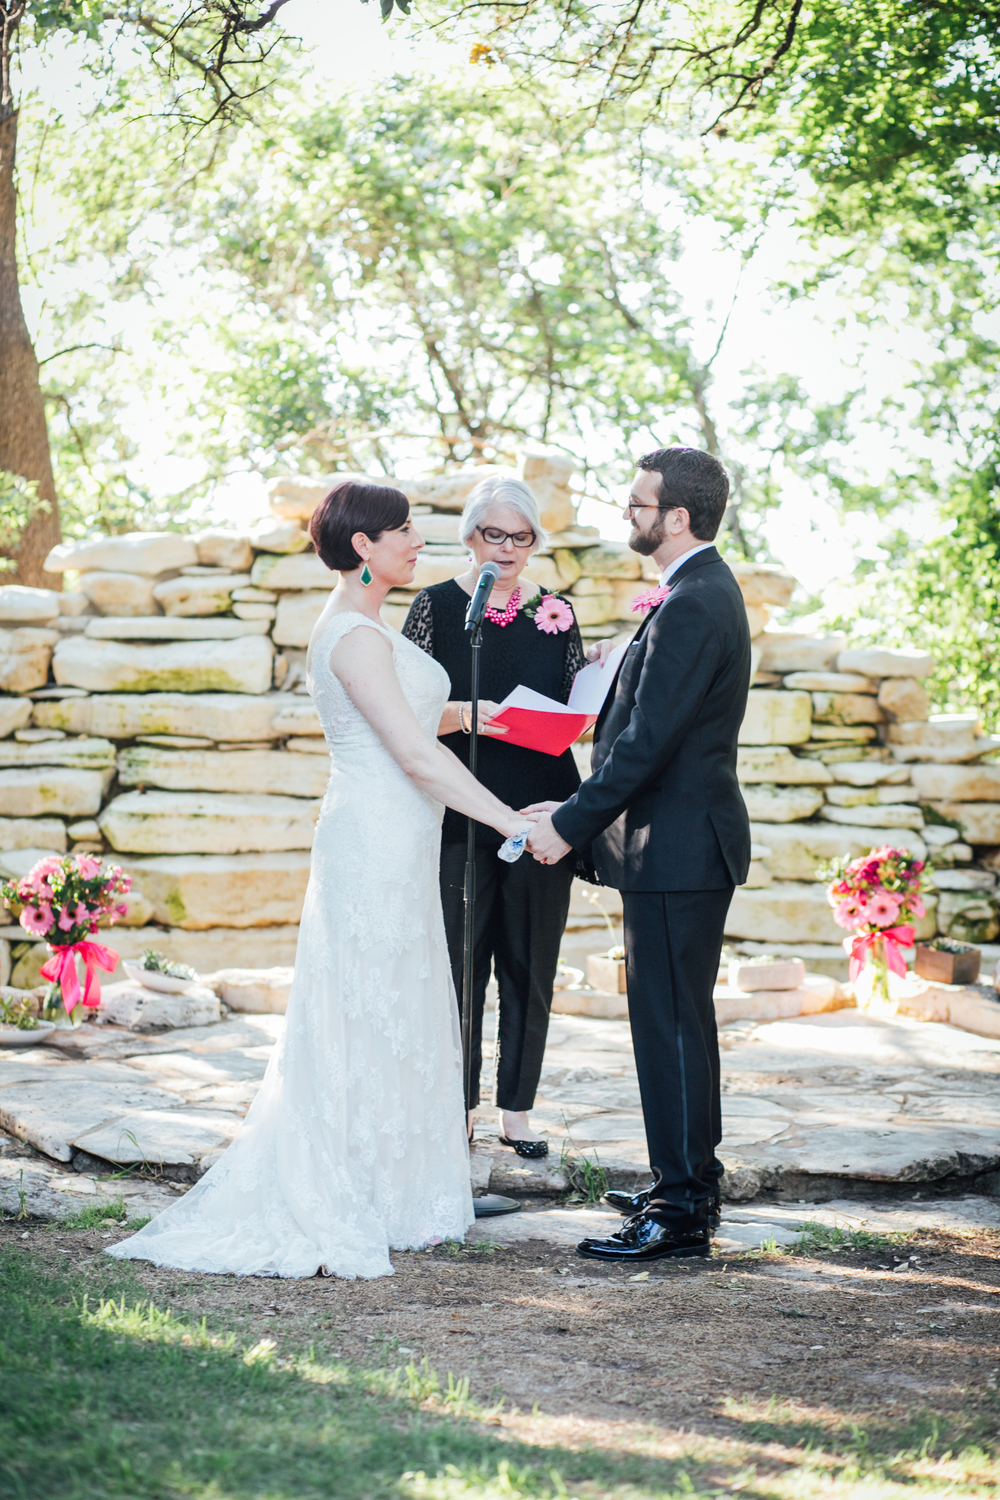 Austin Wedding Photography-59.jpg